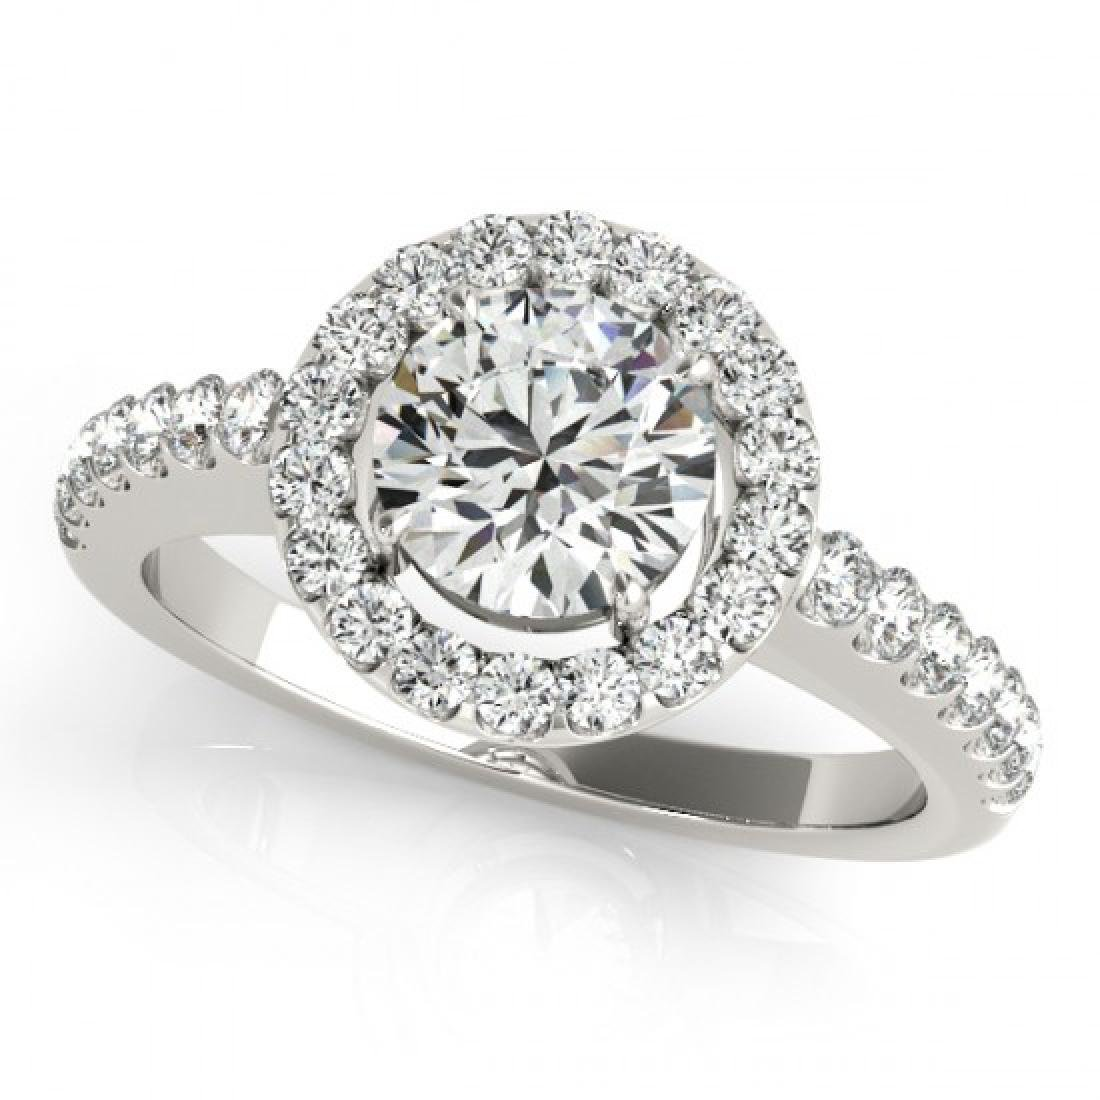 1.02 CTW Certified VS/SI Diamond Solitaire Halo Ring